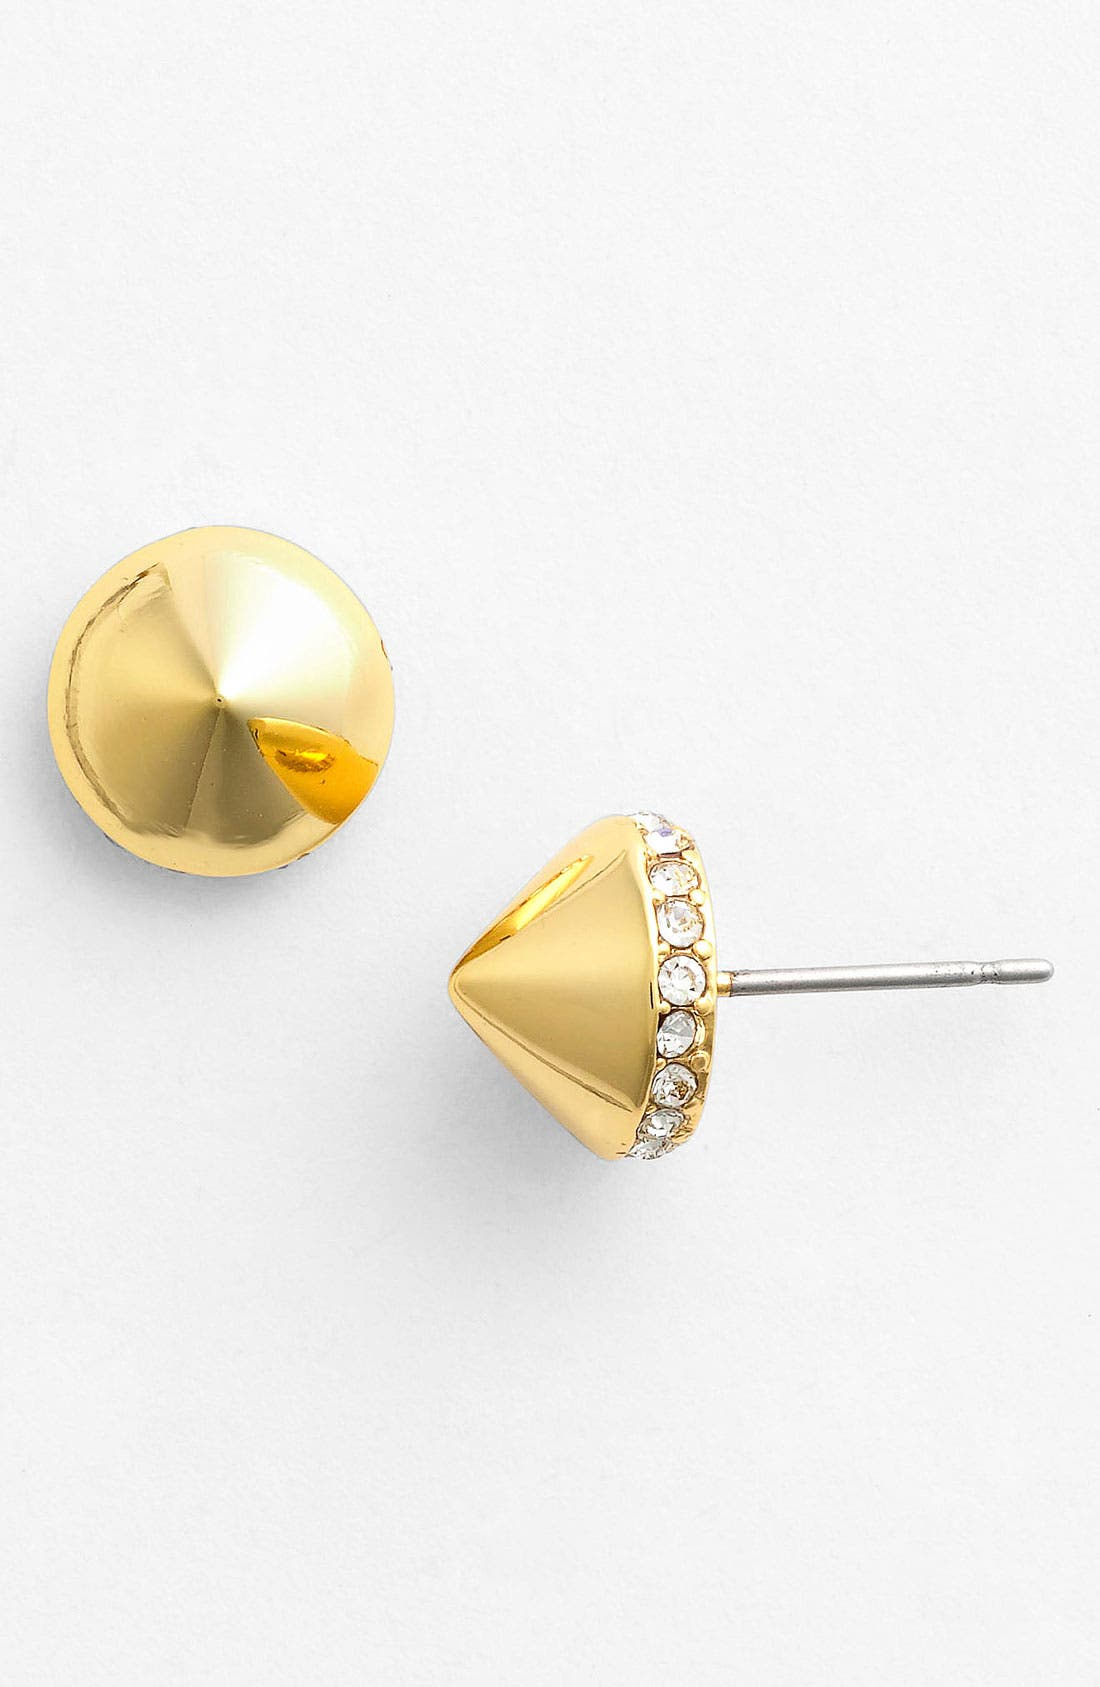 Alternate Image 1 Selected - Vince Camuto 'Lucia' Pavé Cone Stud Earrings